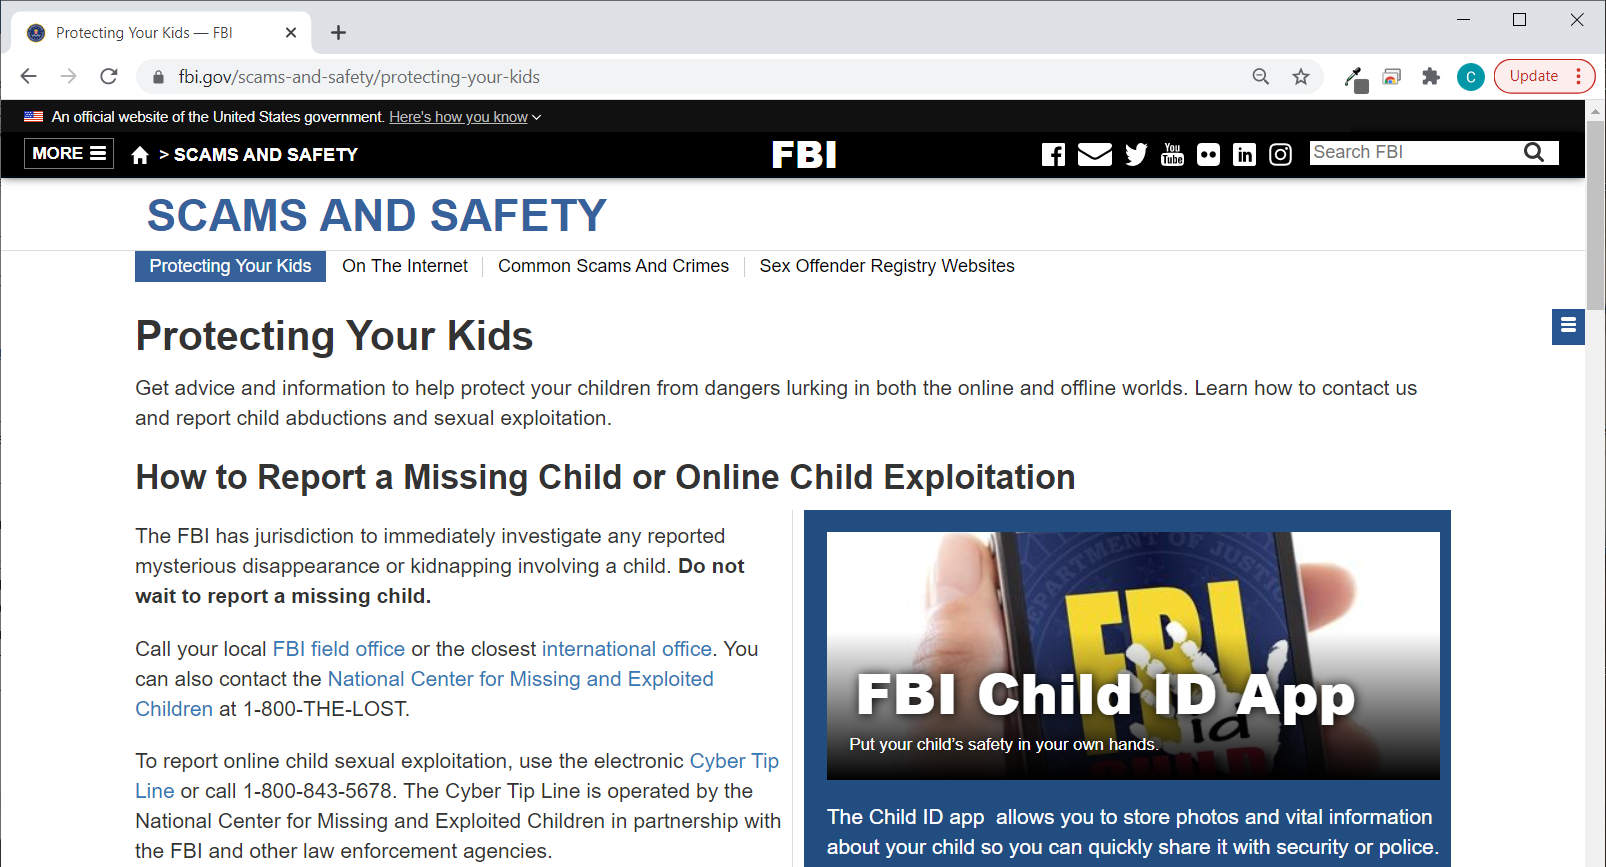 FBI website - Scams And Safety